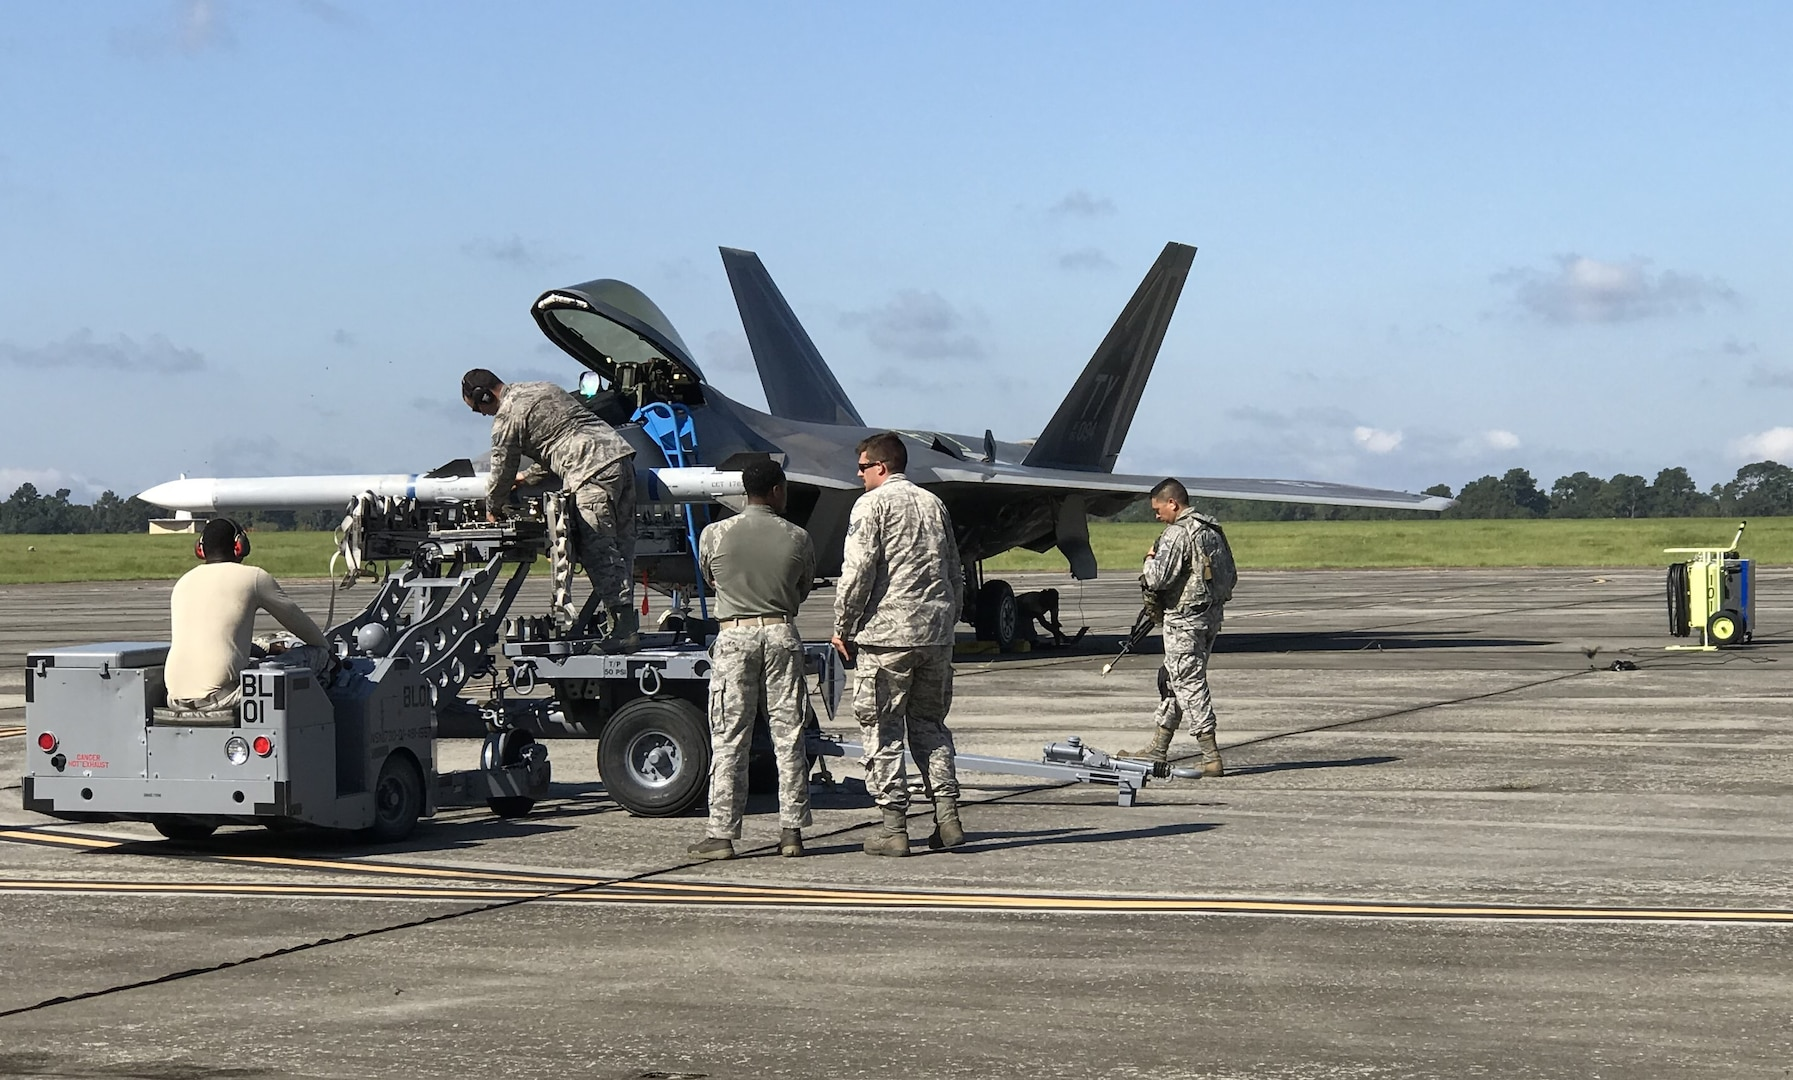 Airmen prepare simulated munitions during the Combat Support Wing exercise at Moody Air Force Base, Georgia, on 18 September.